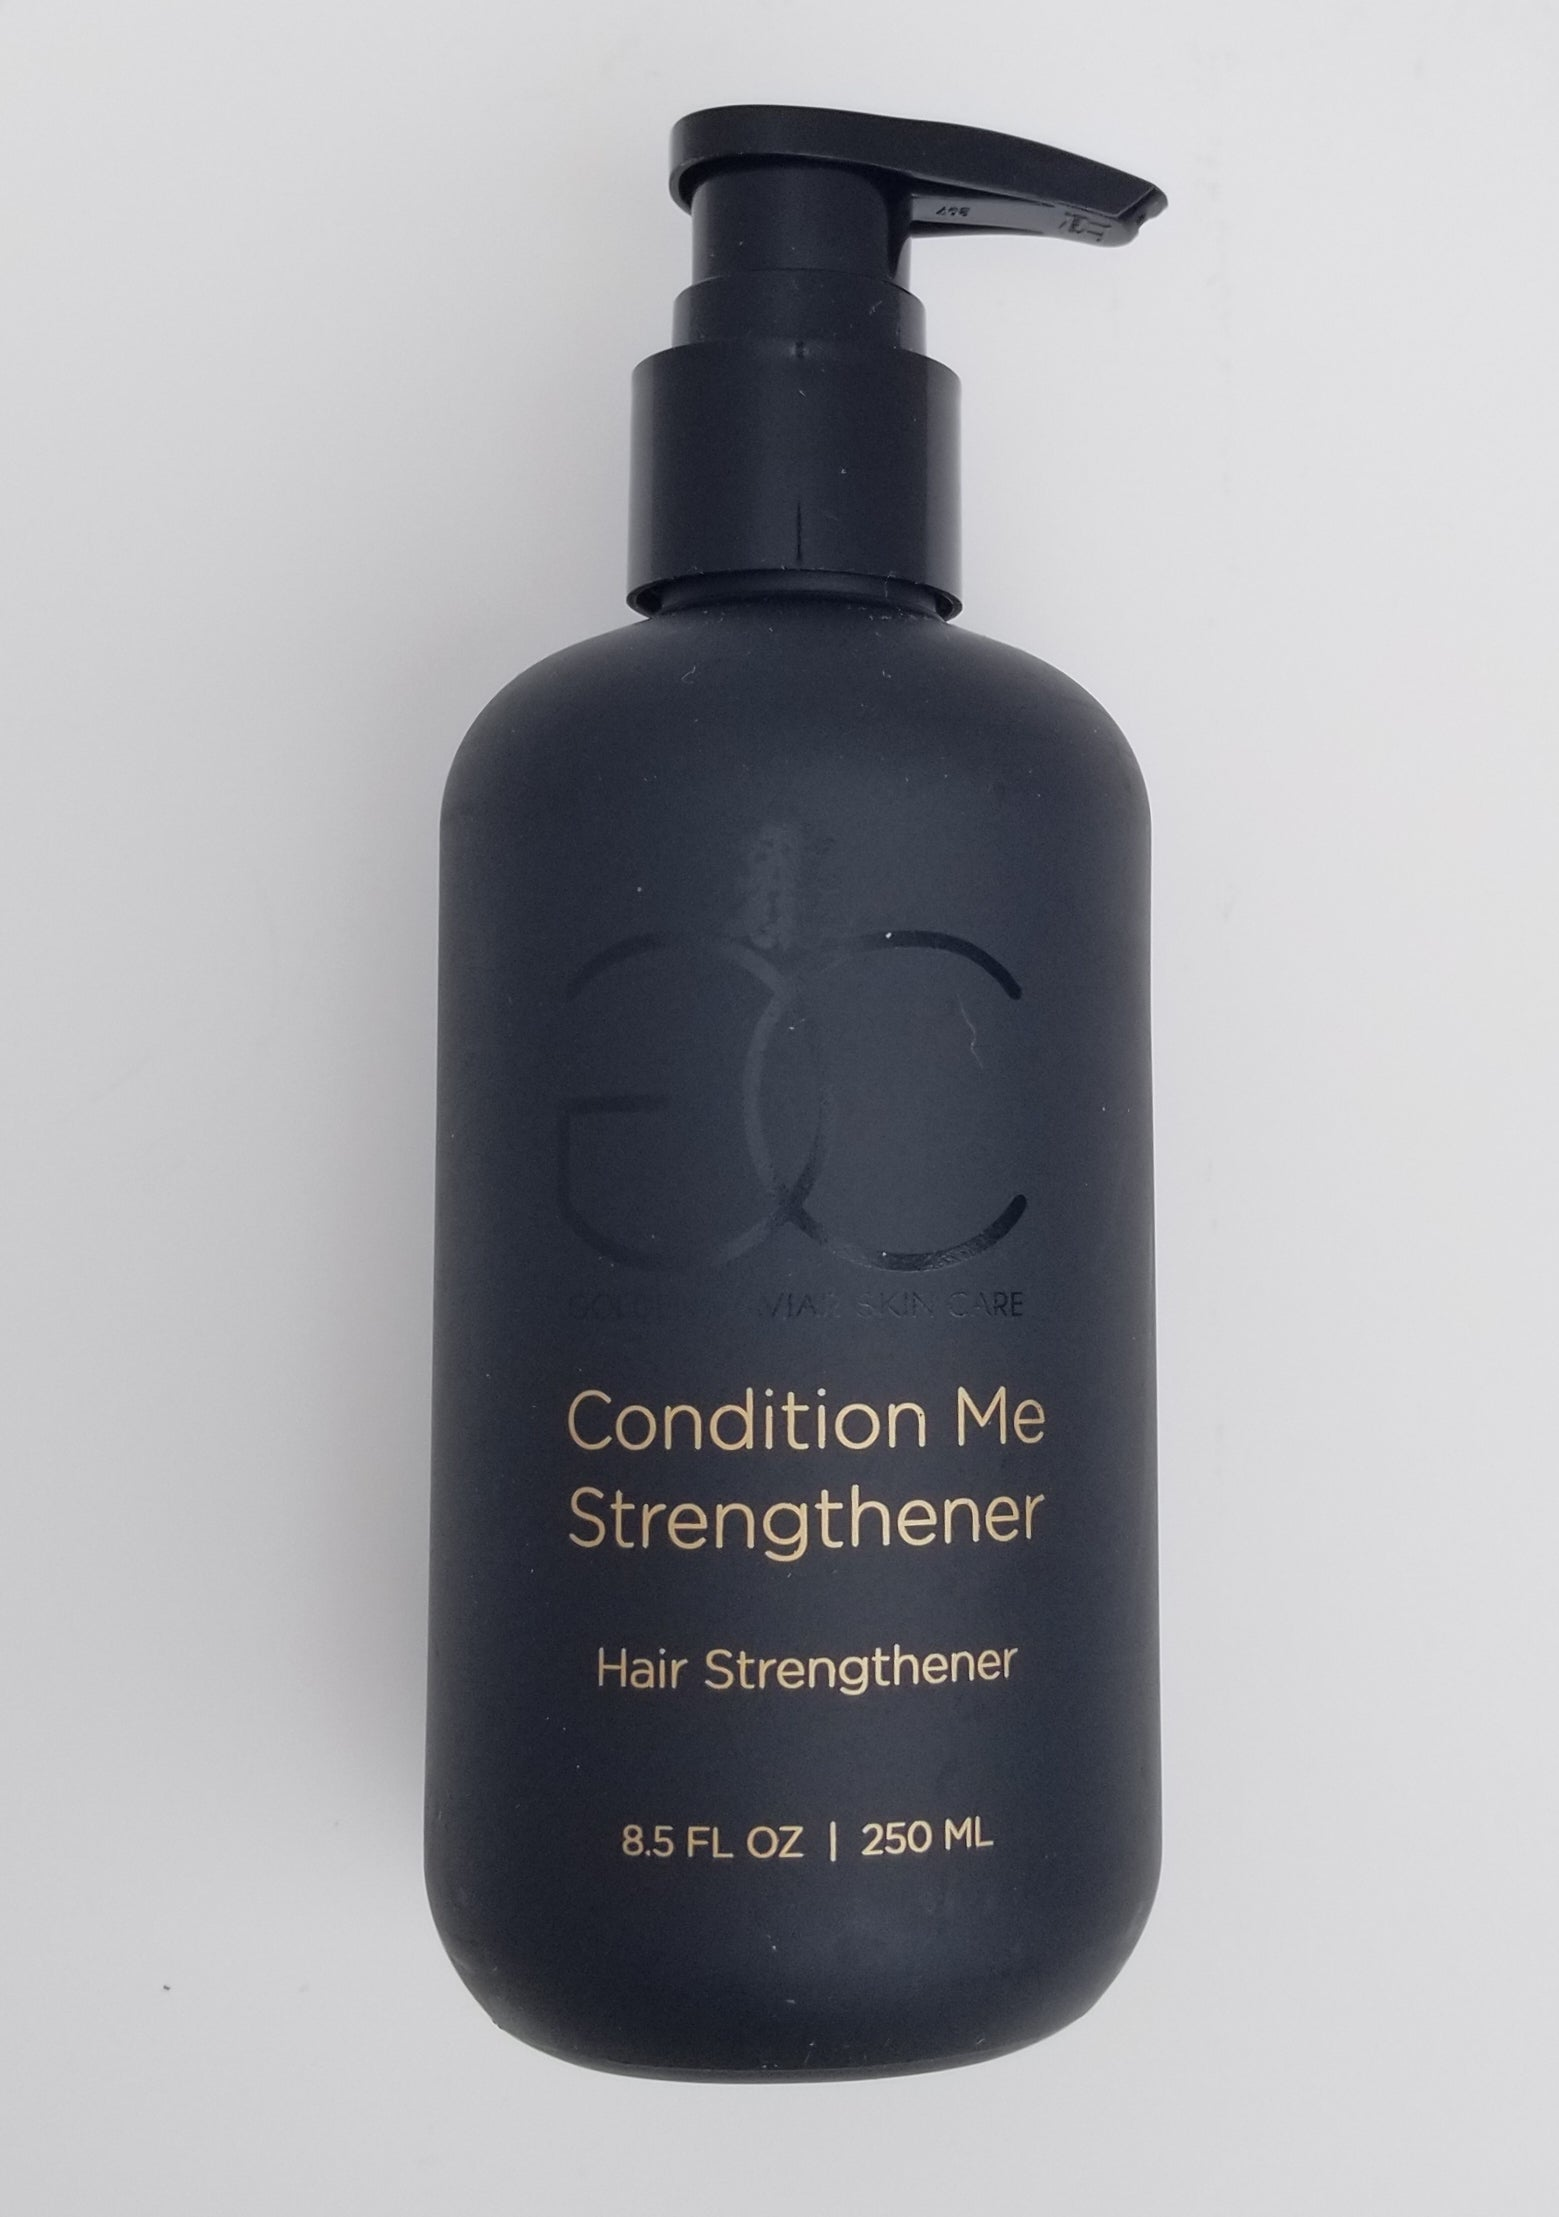 Condition Me Hair loss Strengthener